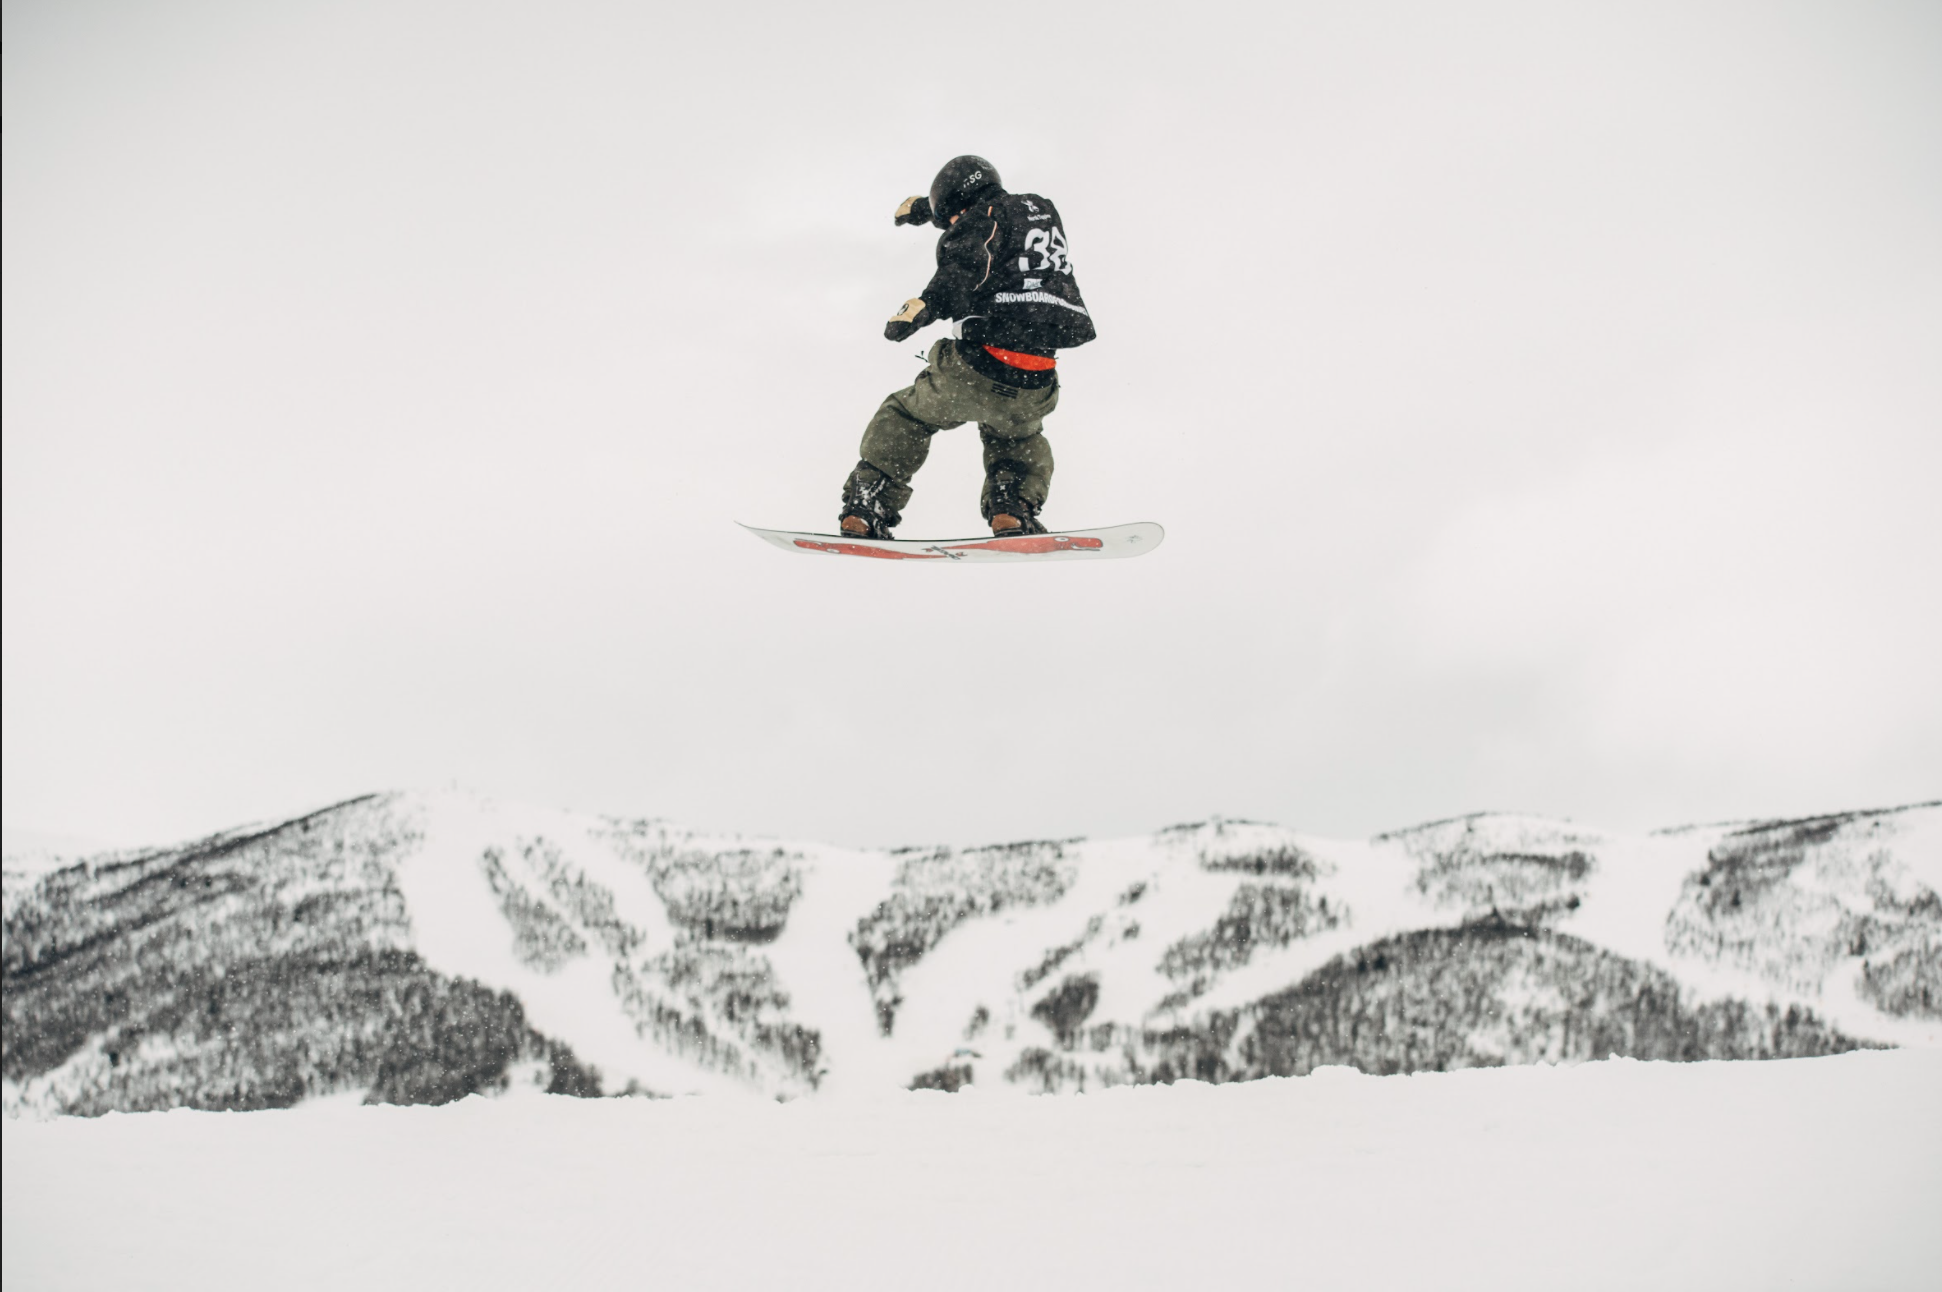 *NY DATO* Norgescup Slopestyle Geilo National